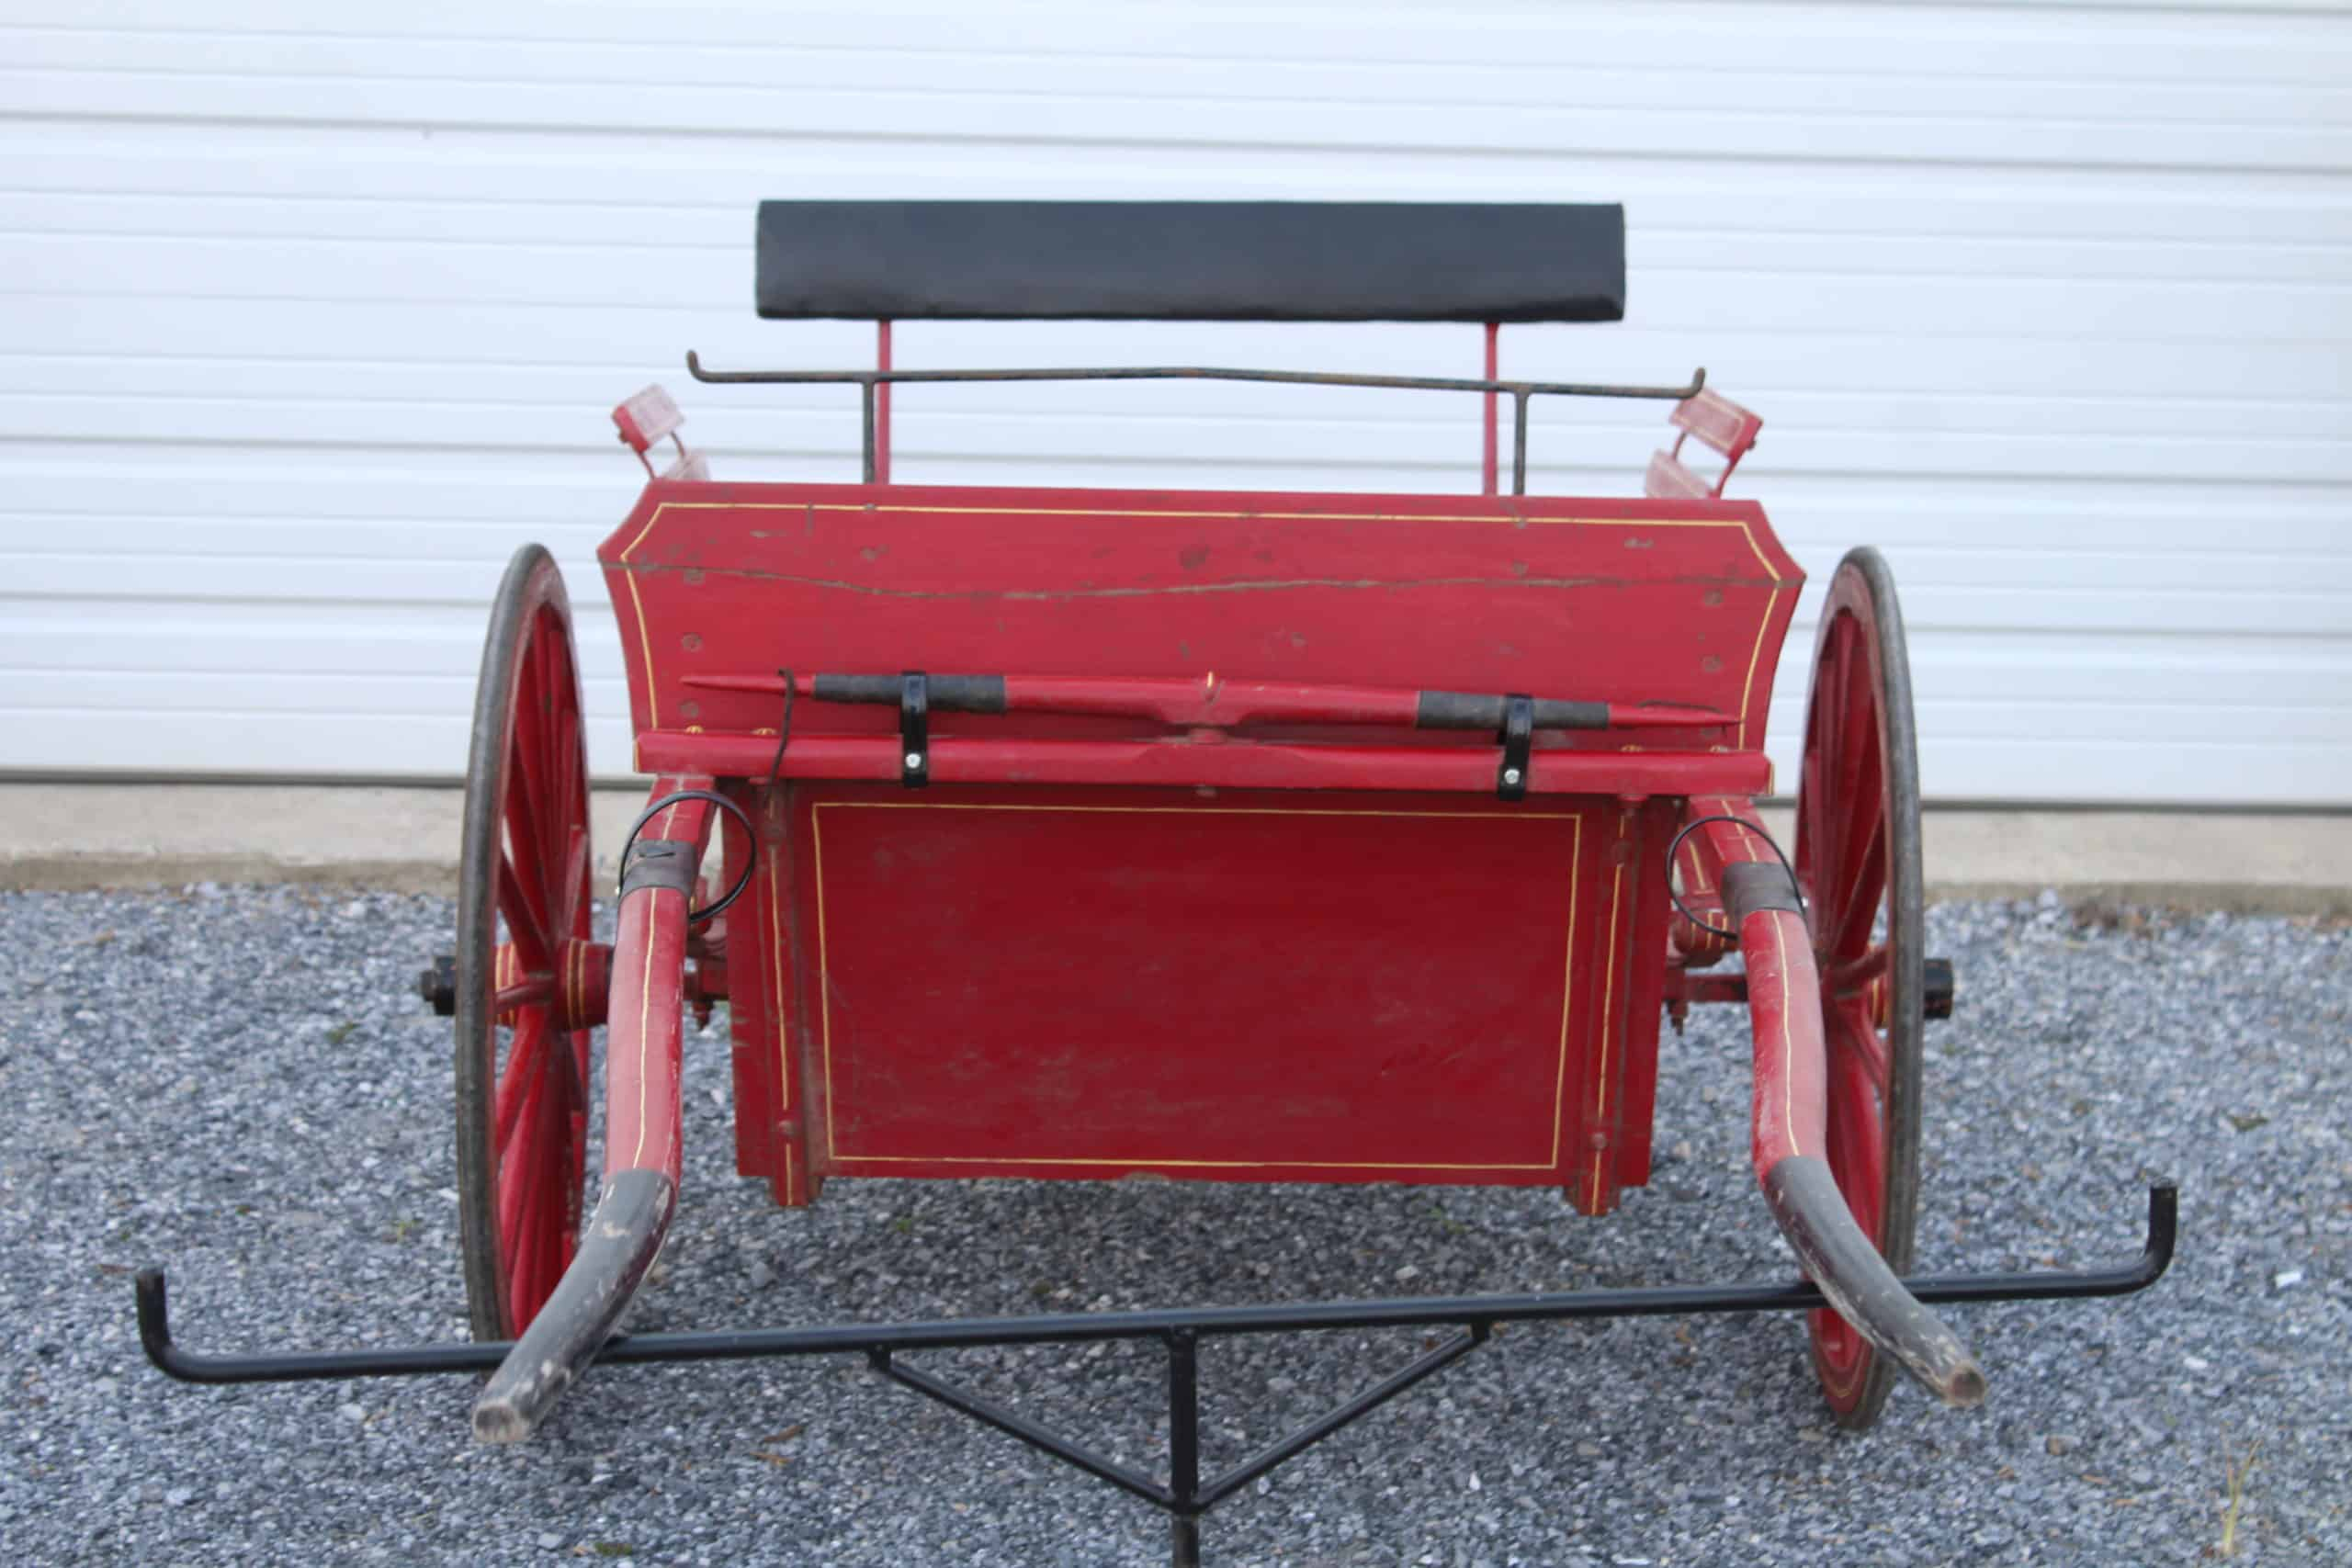 "#598 Used Pony Size Cart, 65"" Shaft, 30"" Wheels on Rubber, Painted Red With Yellow Pin Stripes, Fair Condition, $400.00"